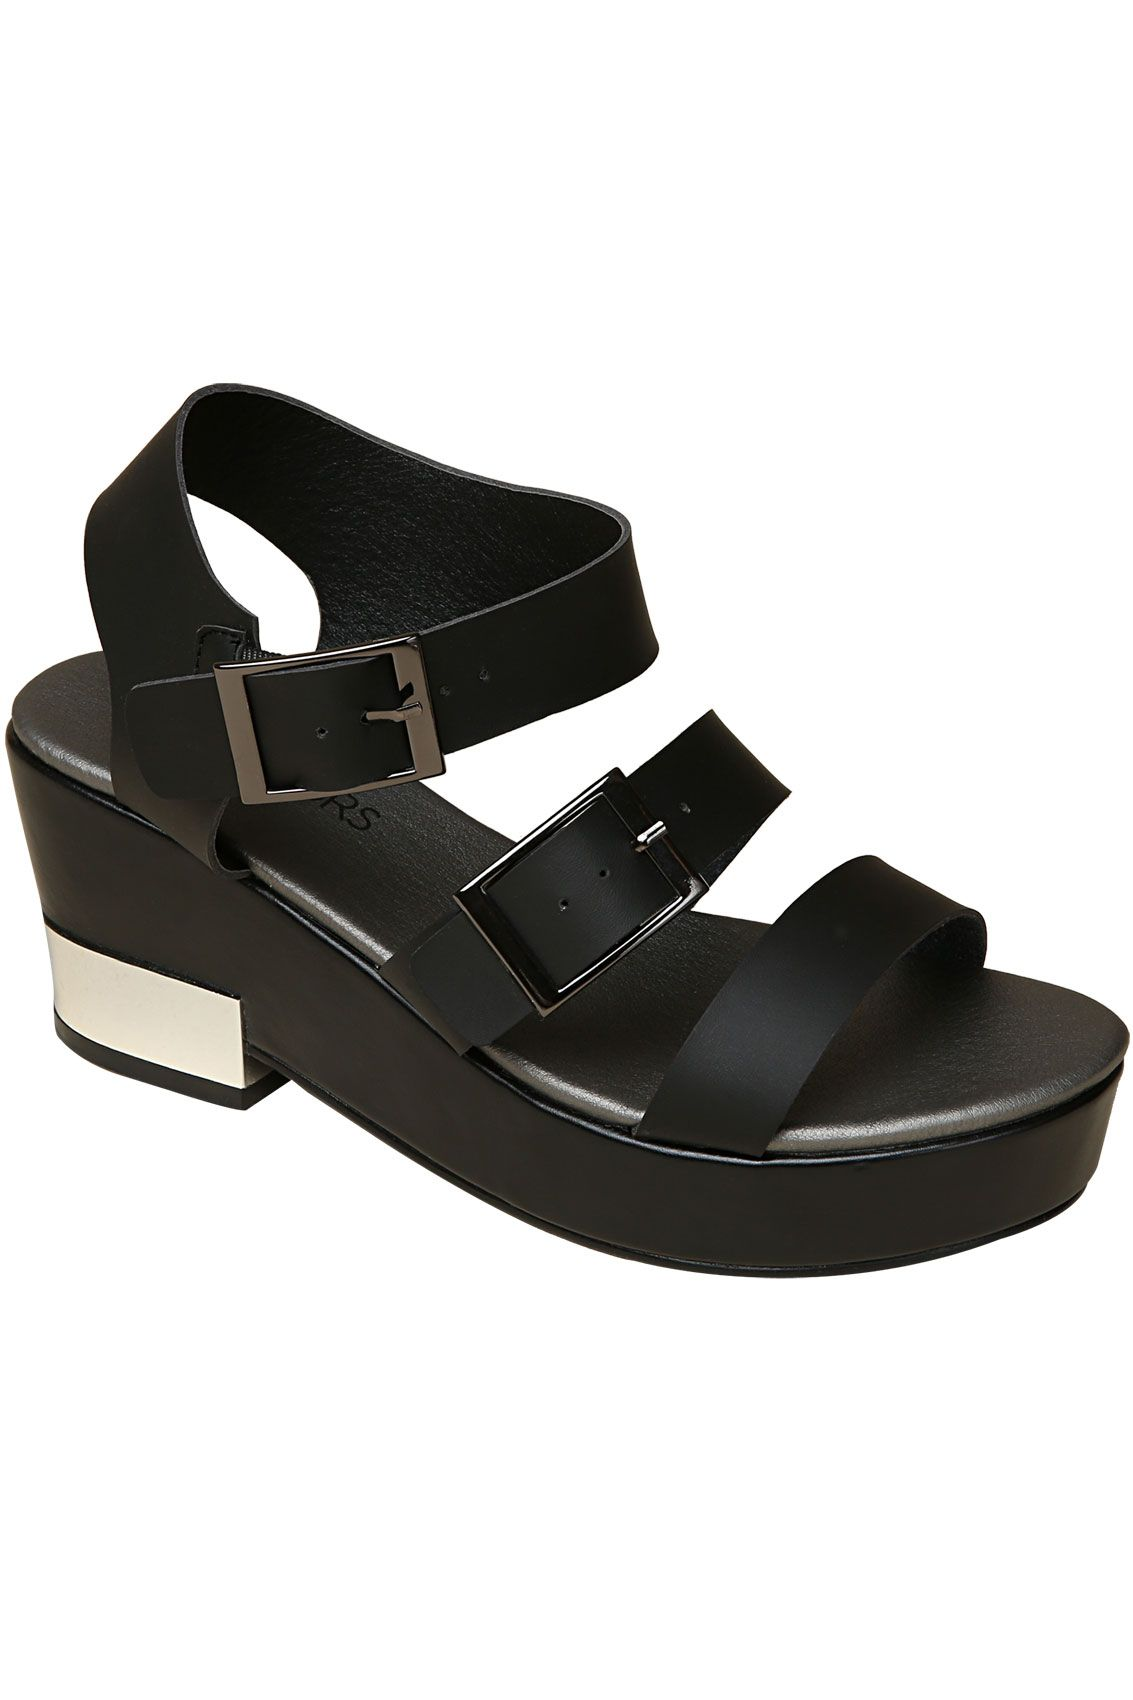 2520d4ec4715 Black Three Strap Platform Sandals With Silver Trim In EEE Fit 4EEE ...